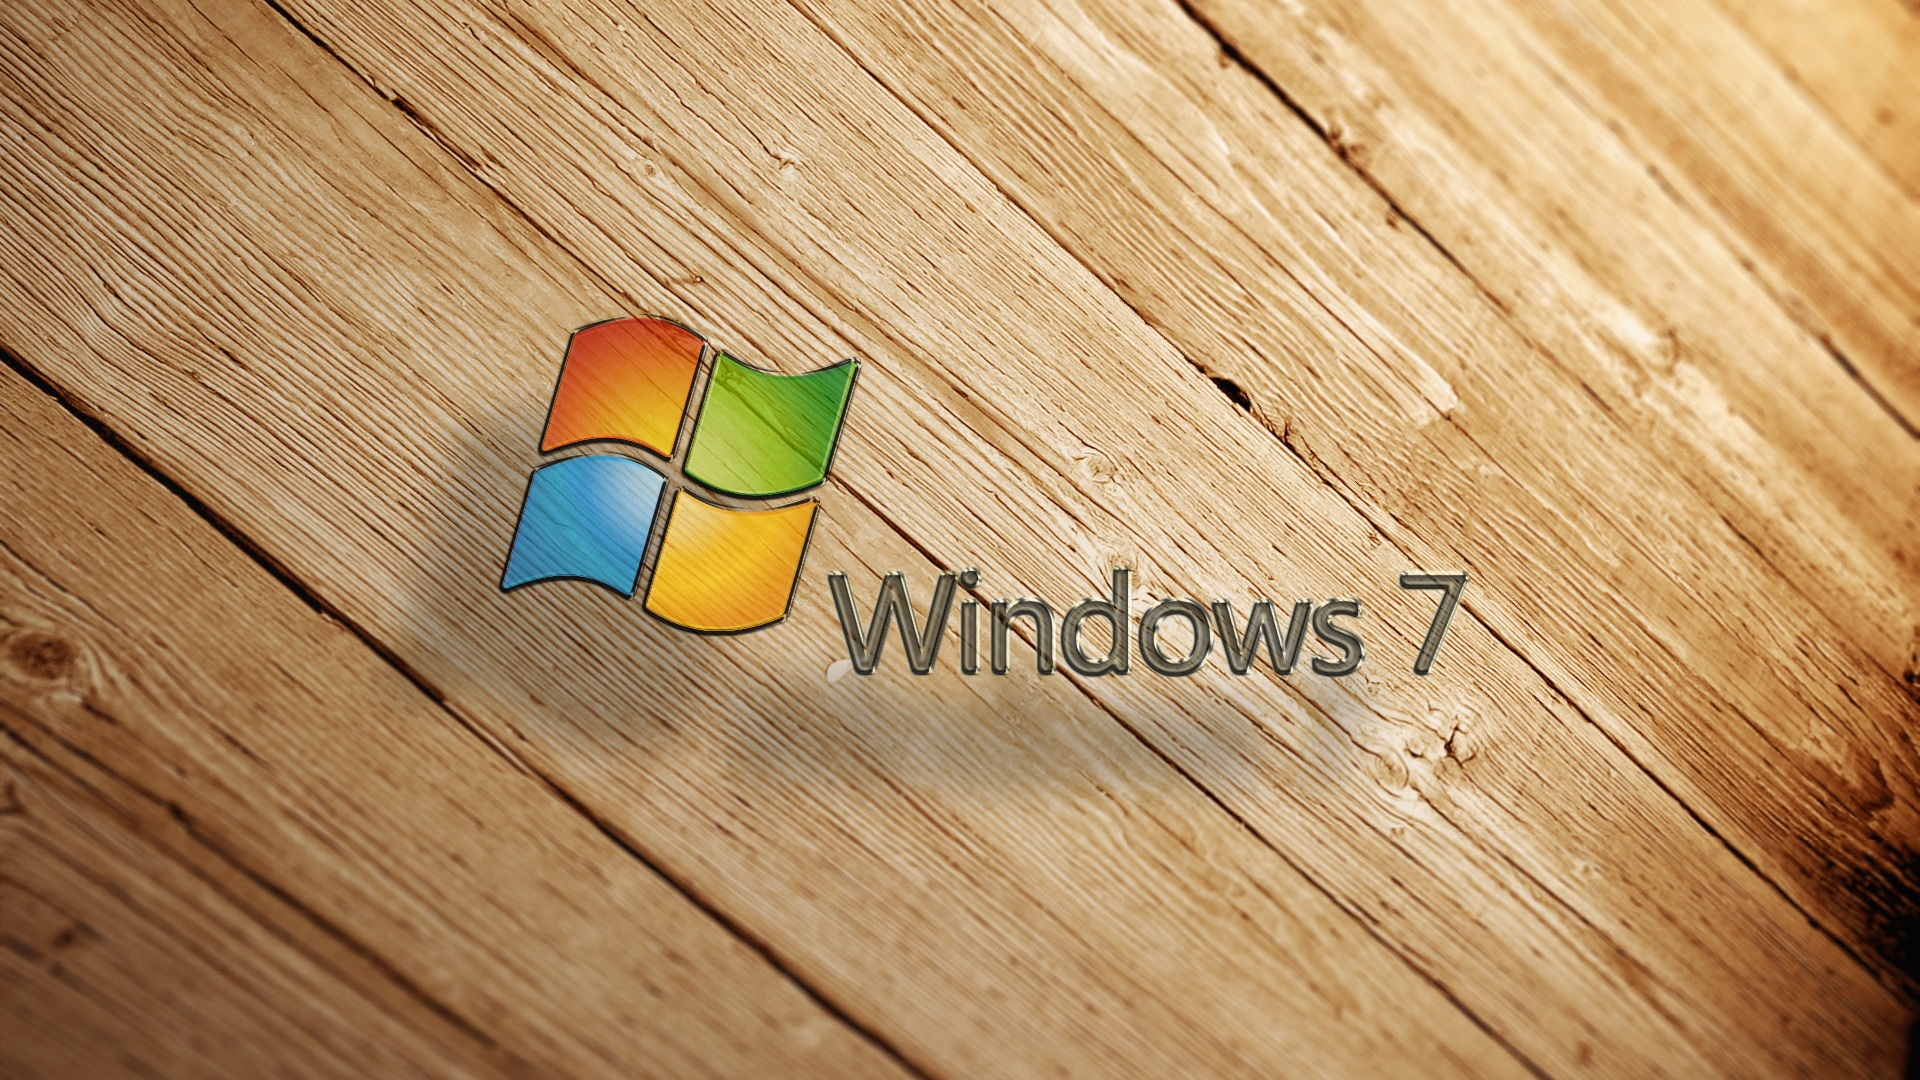 Hd wallpaper windows 7 - Windows7 1920x1080 Hd Ja Best